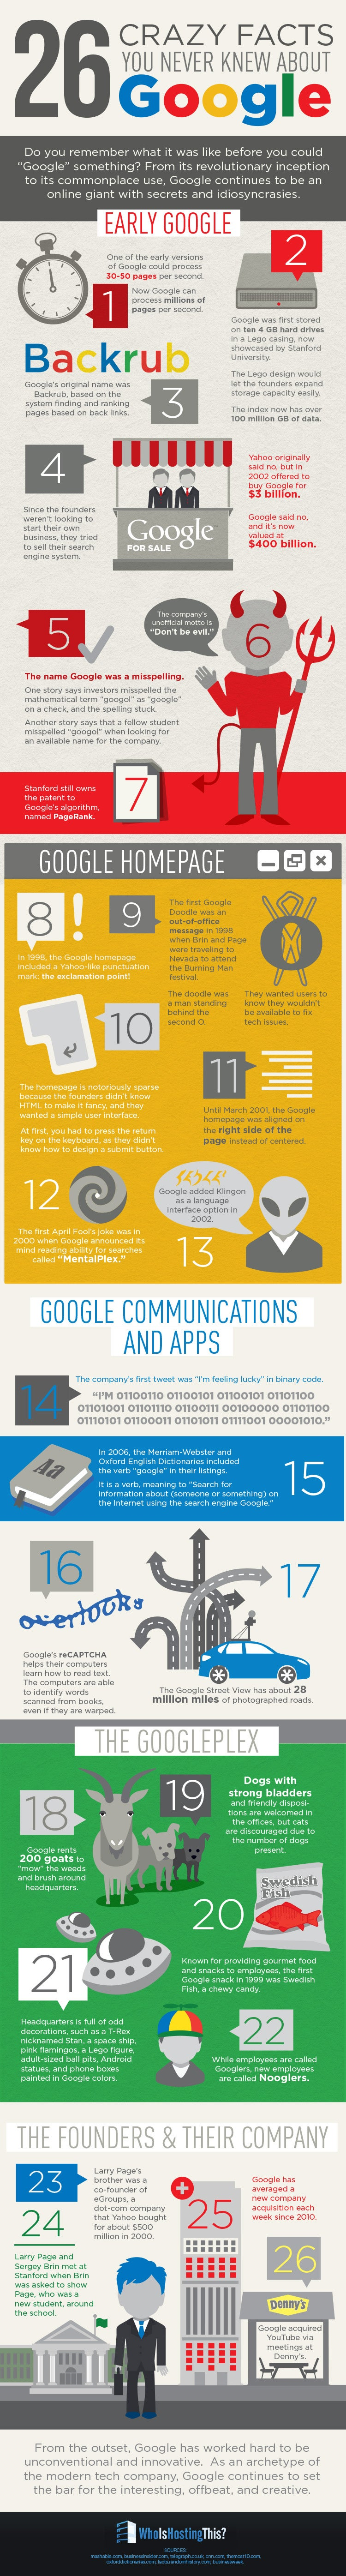 26 Little-Known Facts About Google (Infographic)